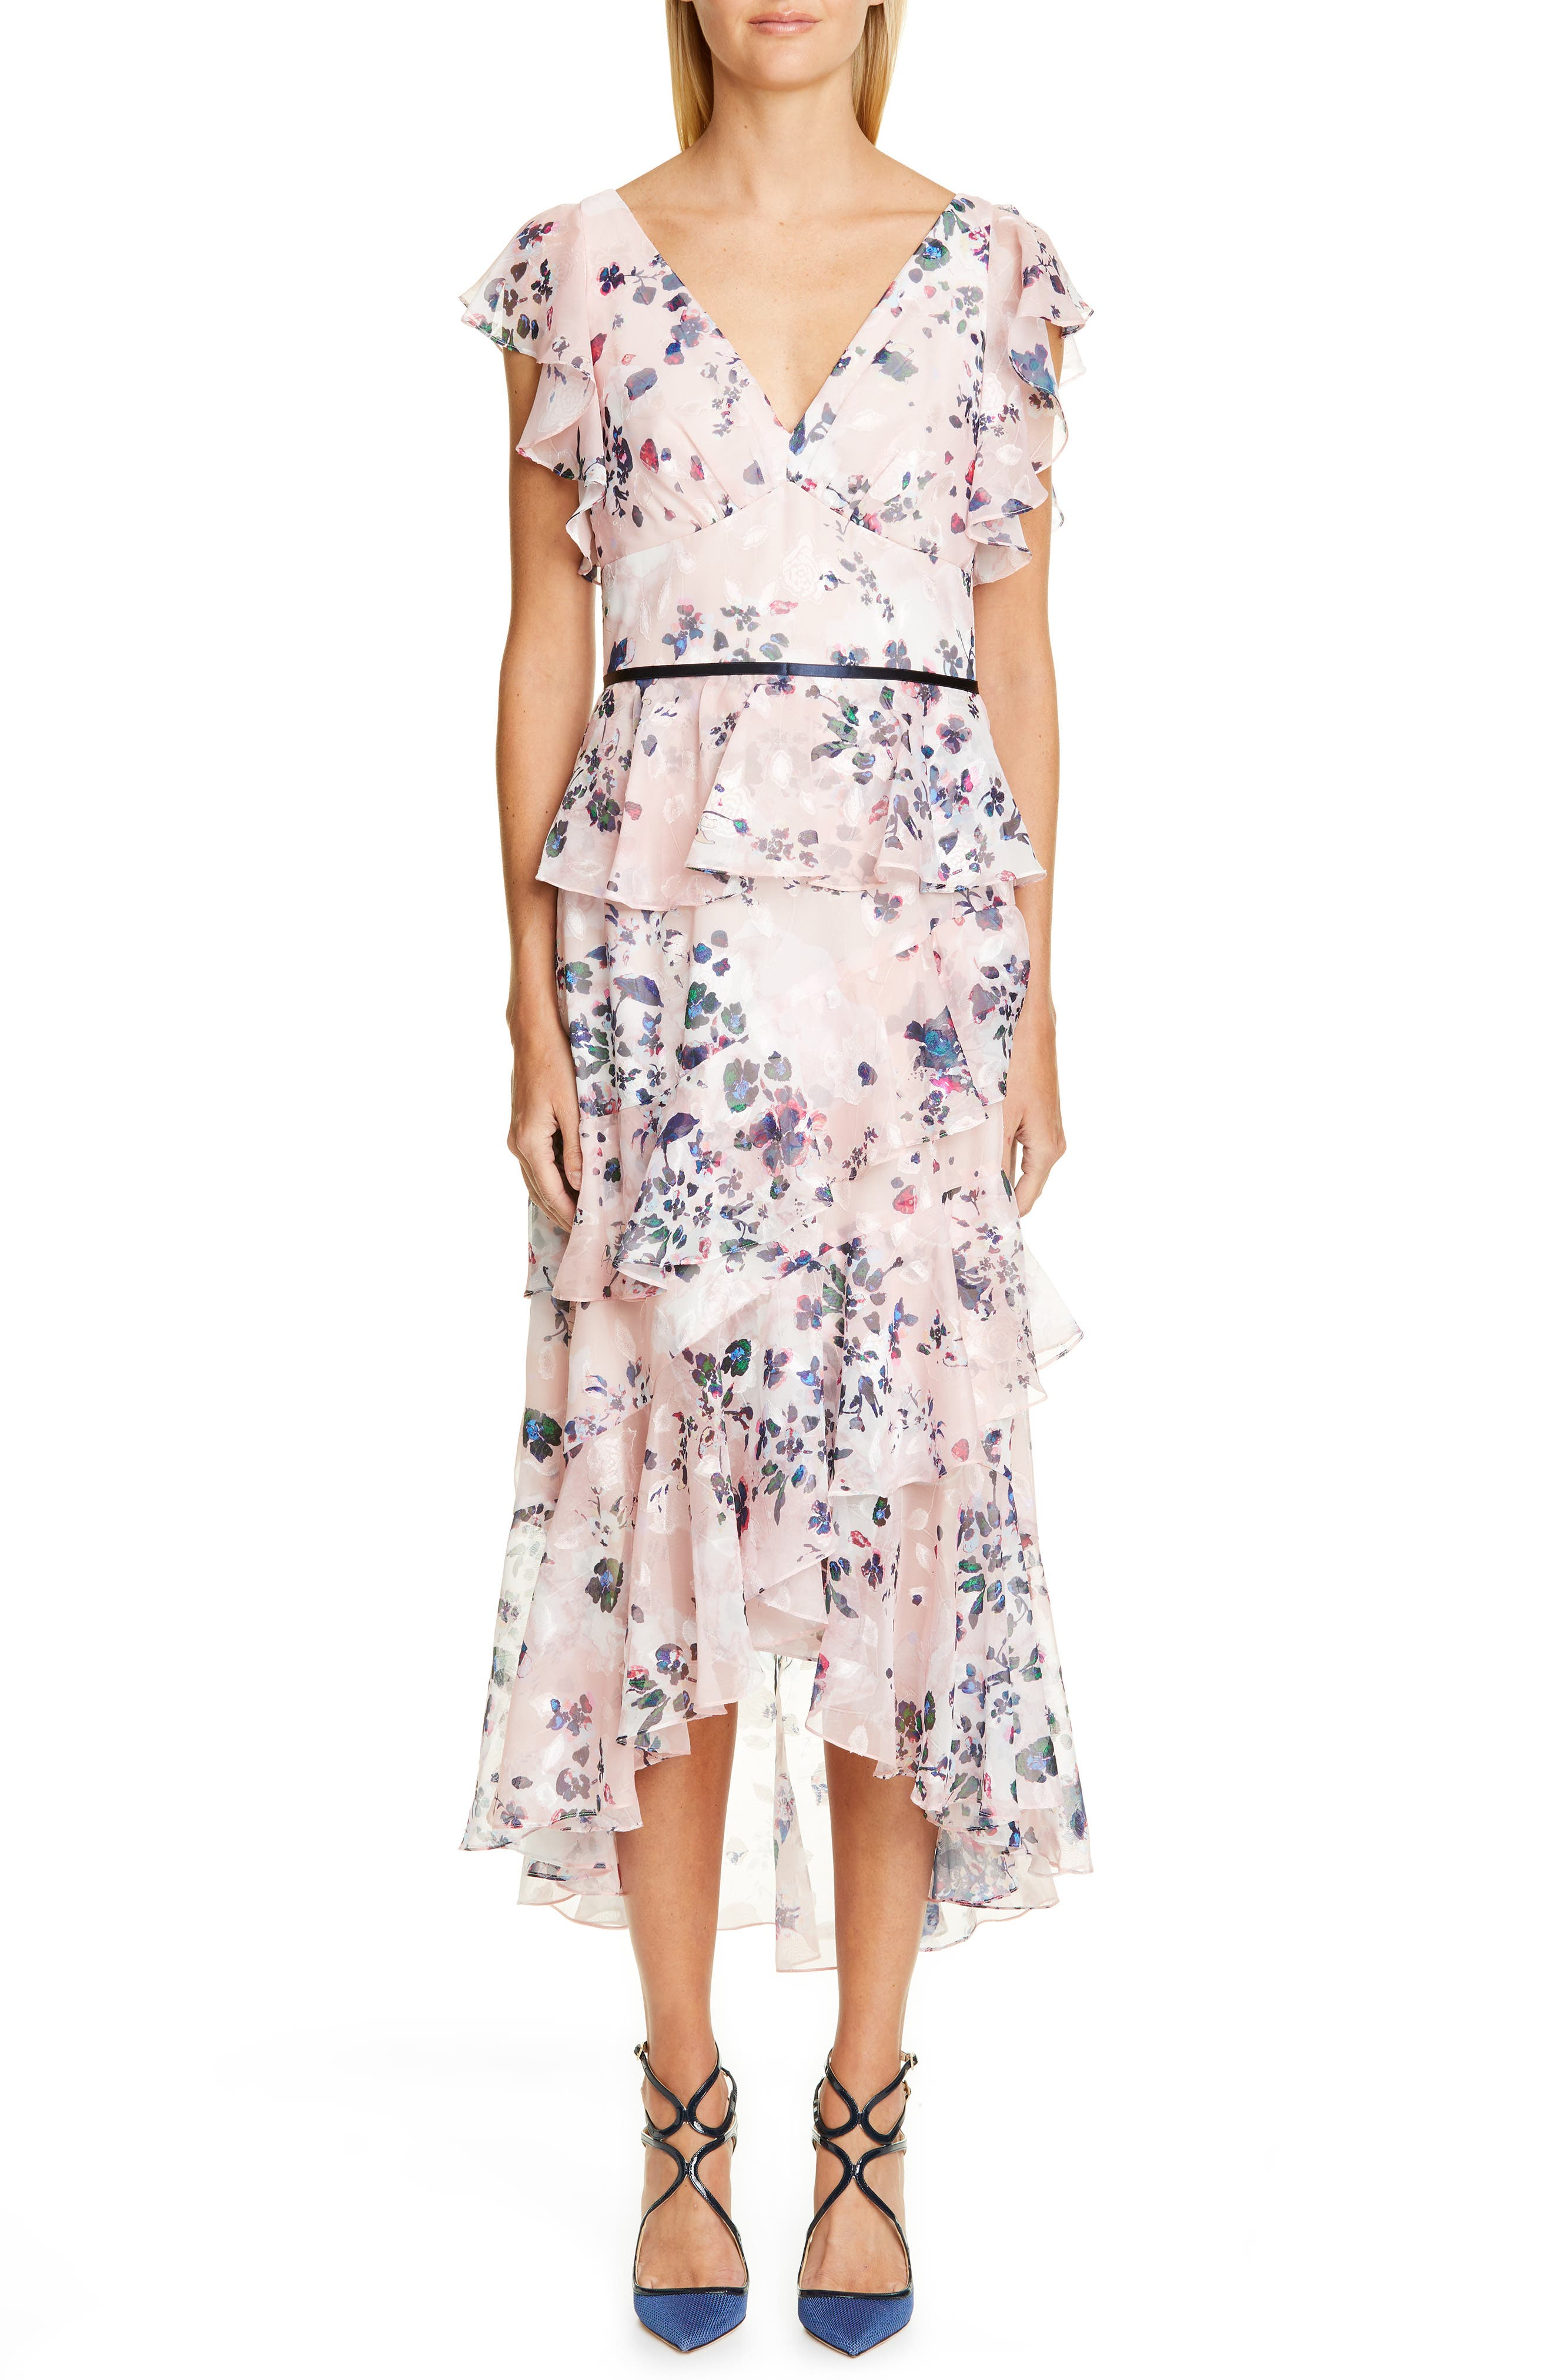 MARCHESA NOTTE, Floral Ruffle Tiered Midi Dress, Main thumbnail 1, color, 680